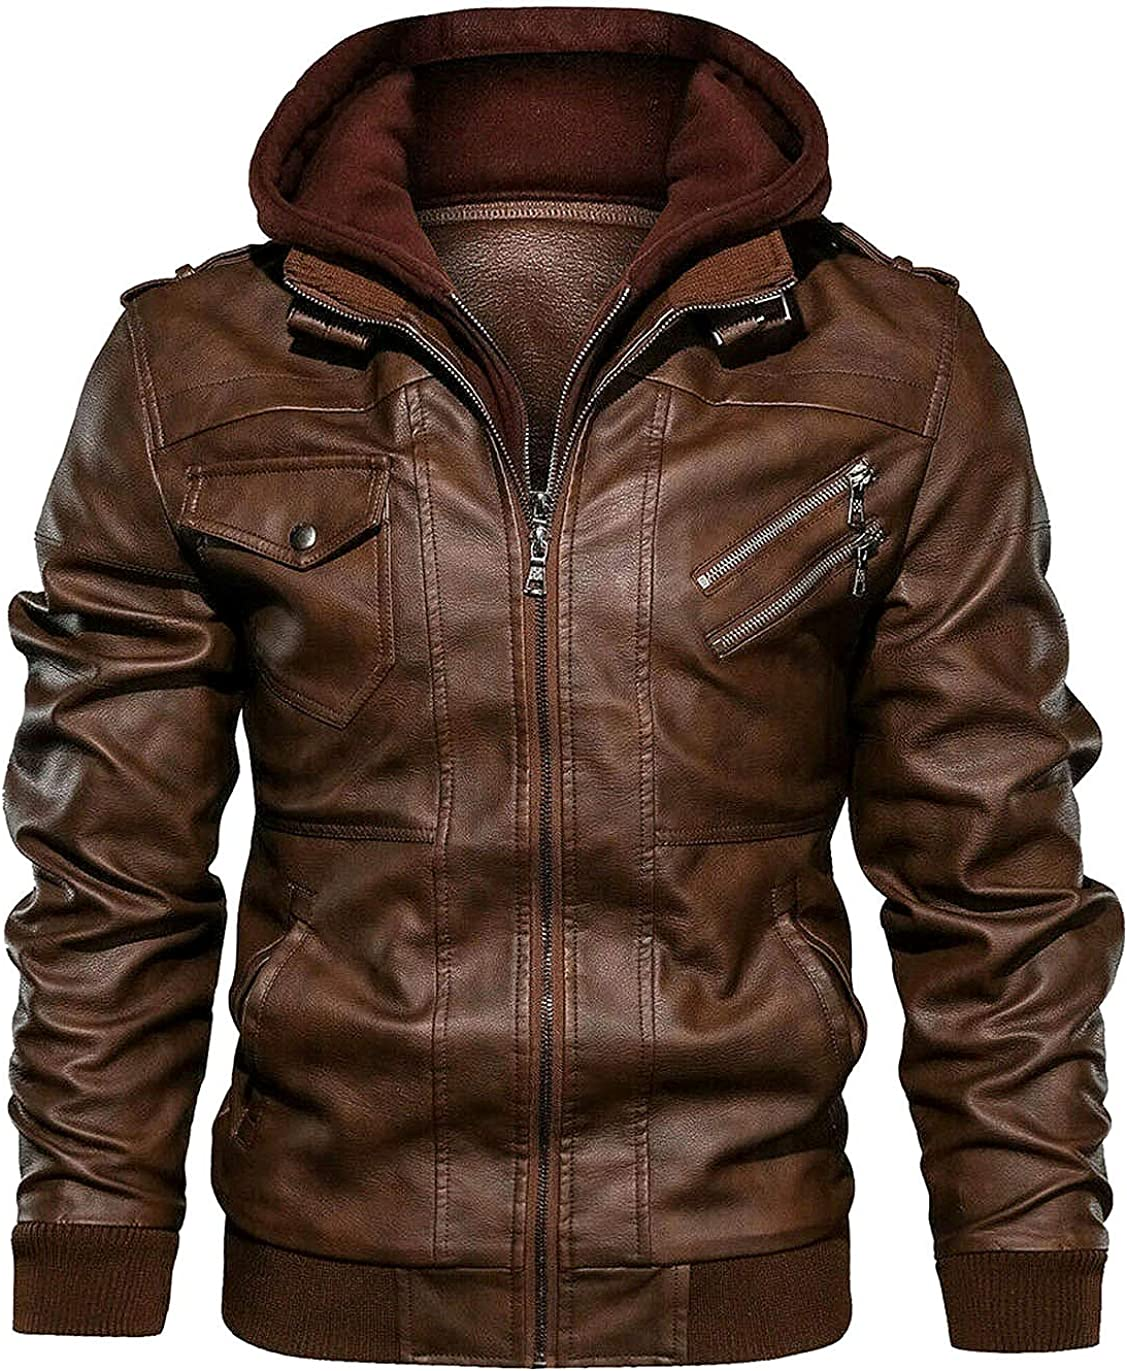 Spazeup Men Brown Leather Motorcycle Jacket with Removable Hood-Mens Bomber Jacket-Chaquetas De Hombre